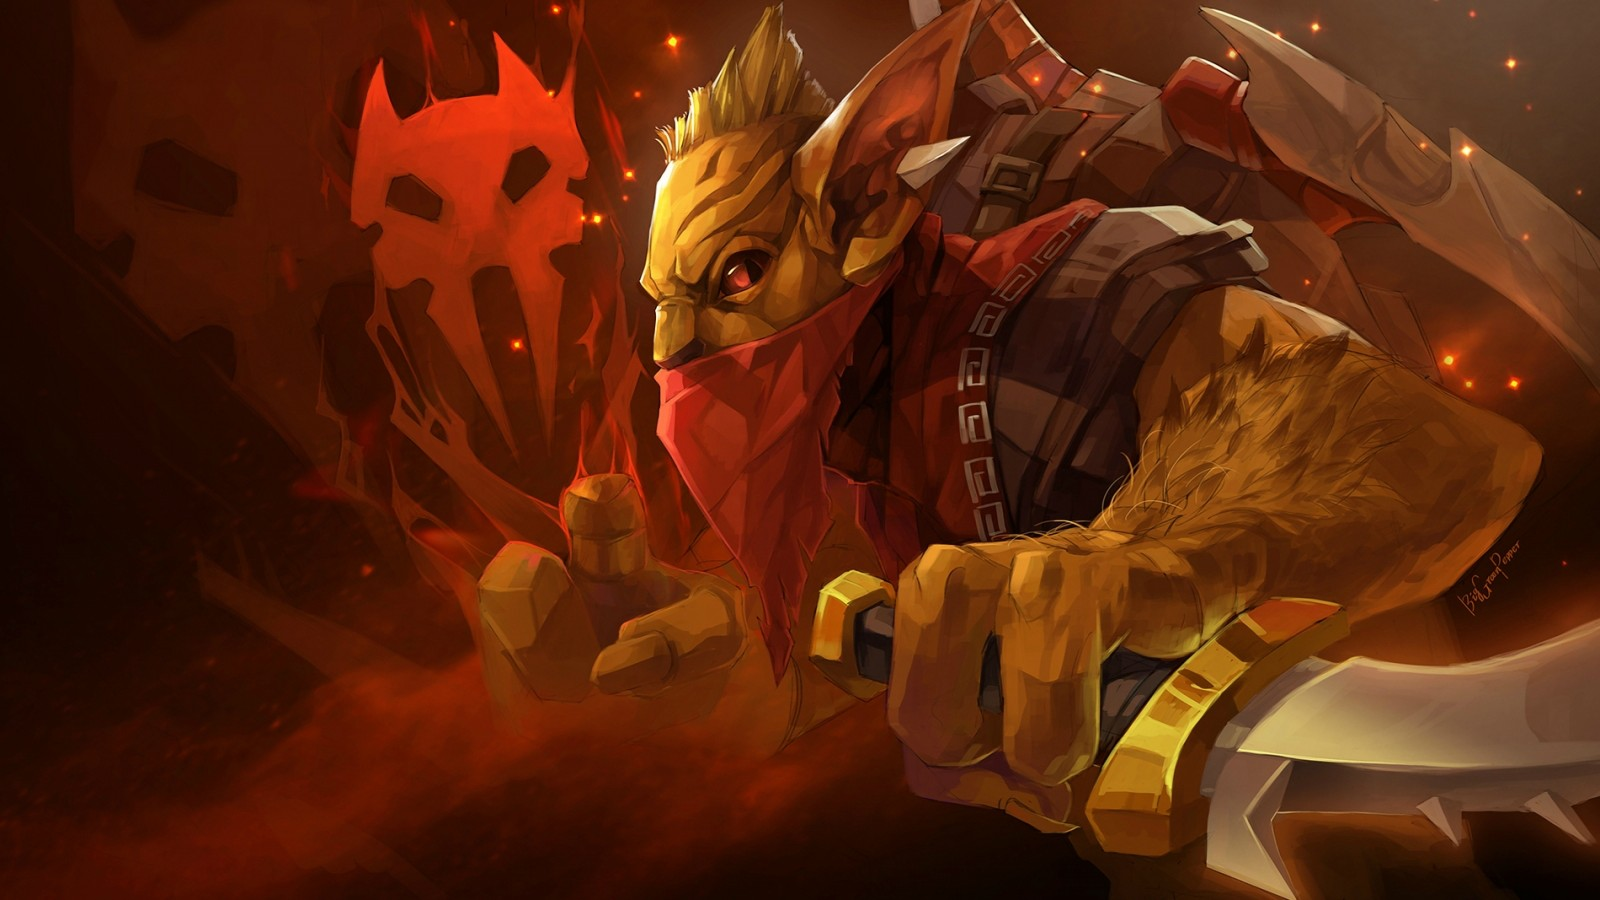 Wallpaper Abyss Explore the Collection Dota Video Game DotA 2 458779 1600x900